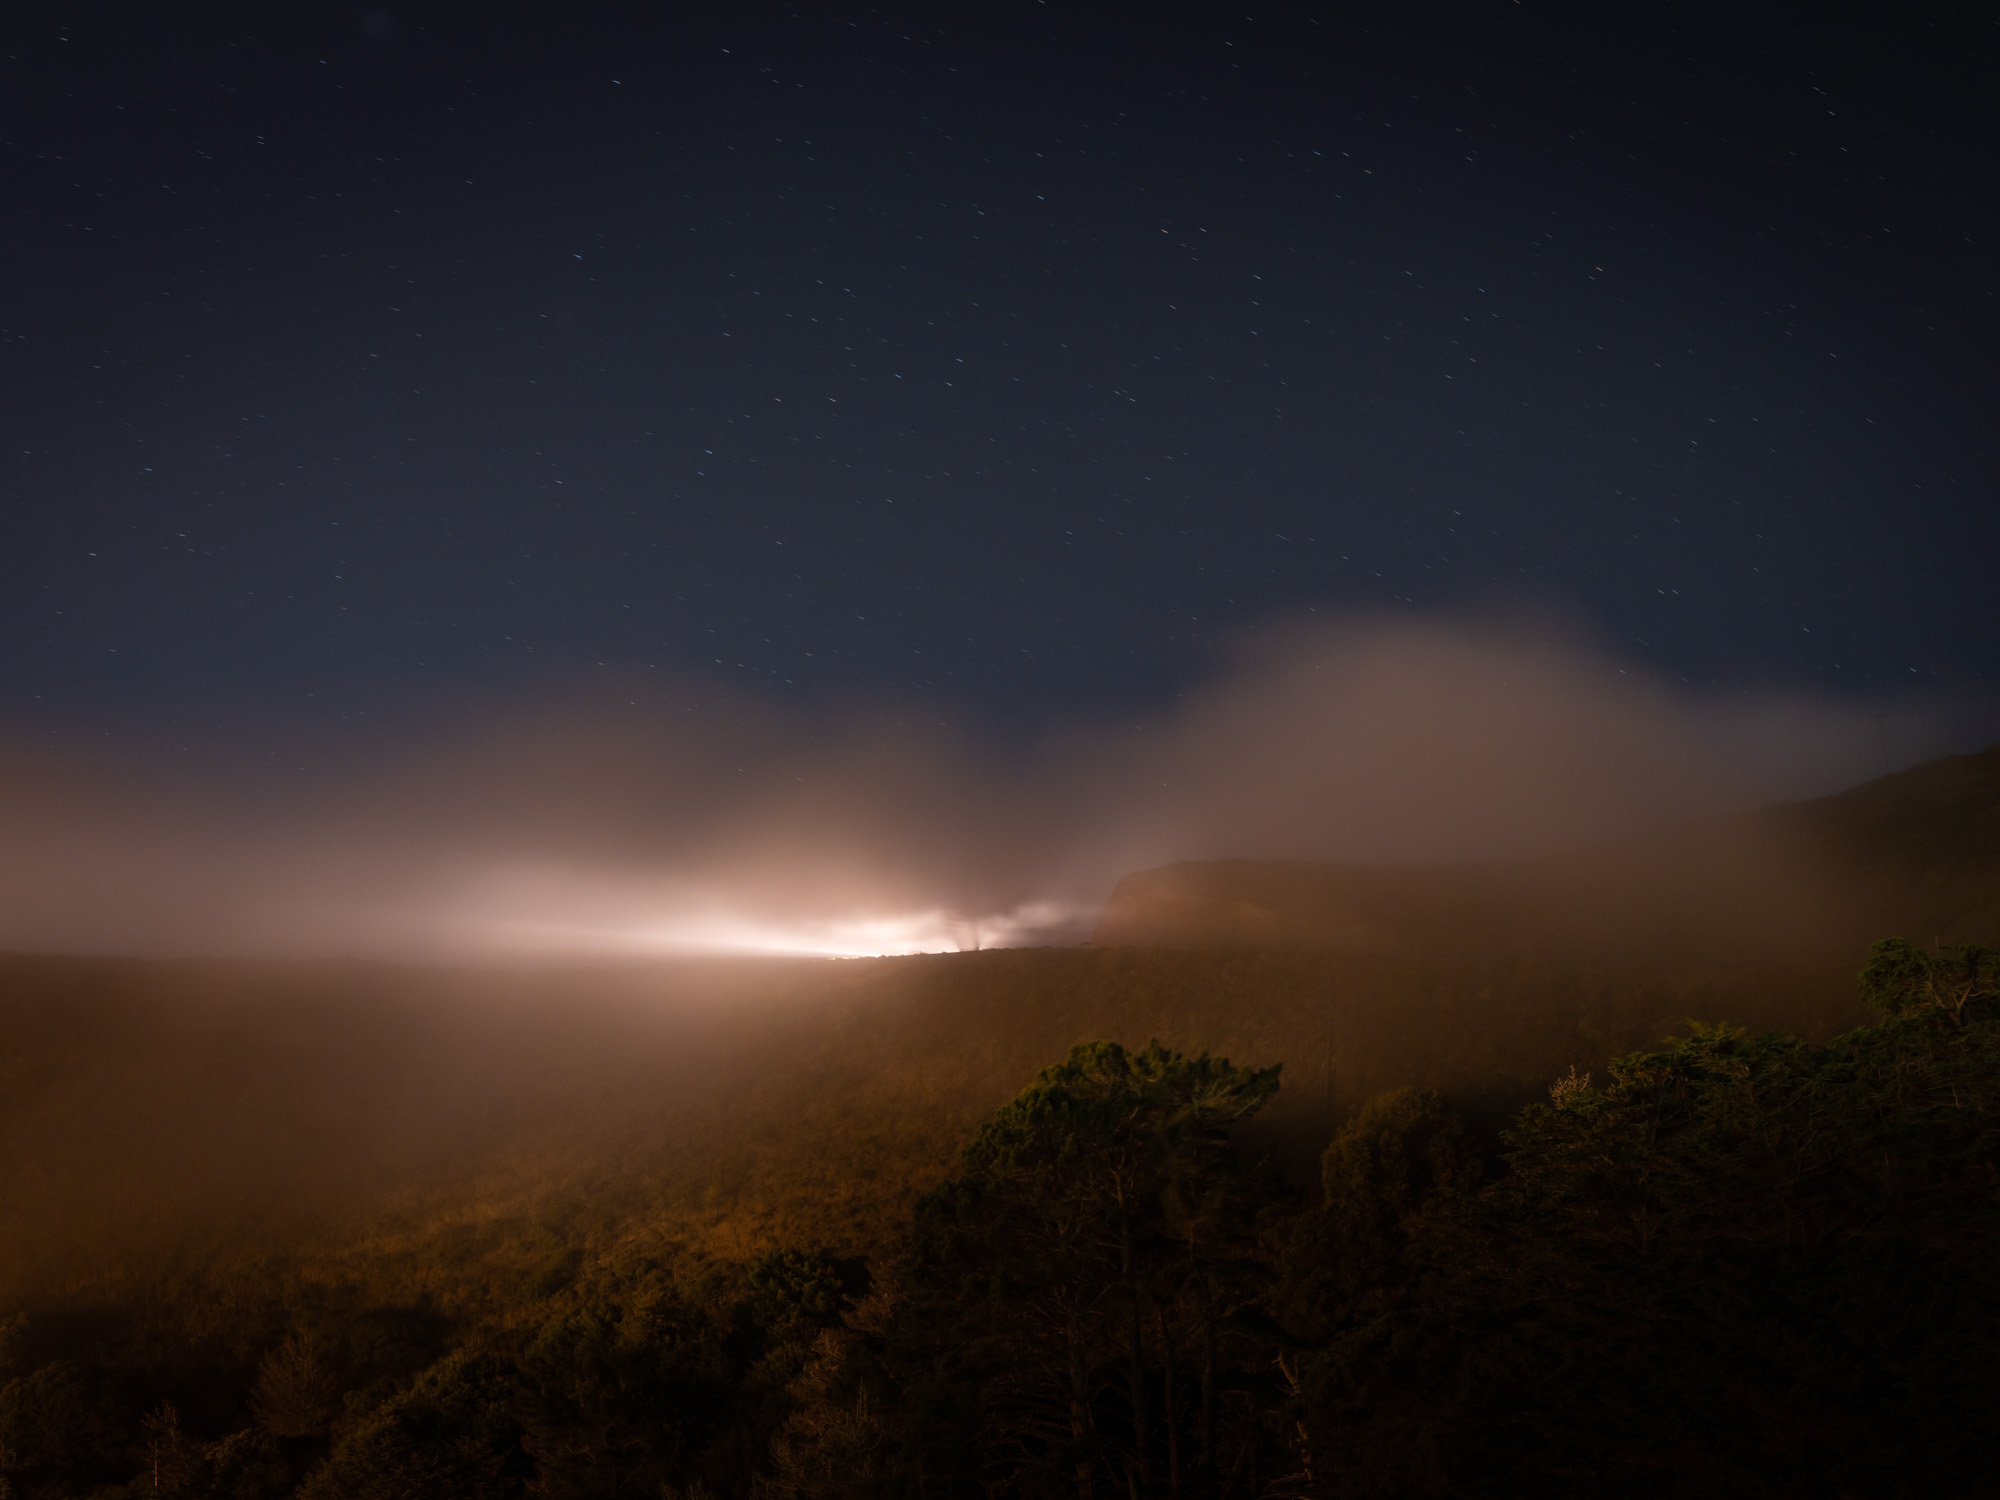 Light on hill at night overlooking trees.